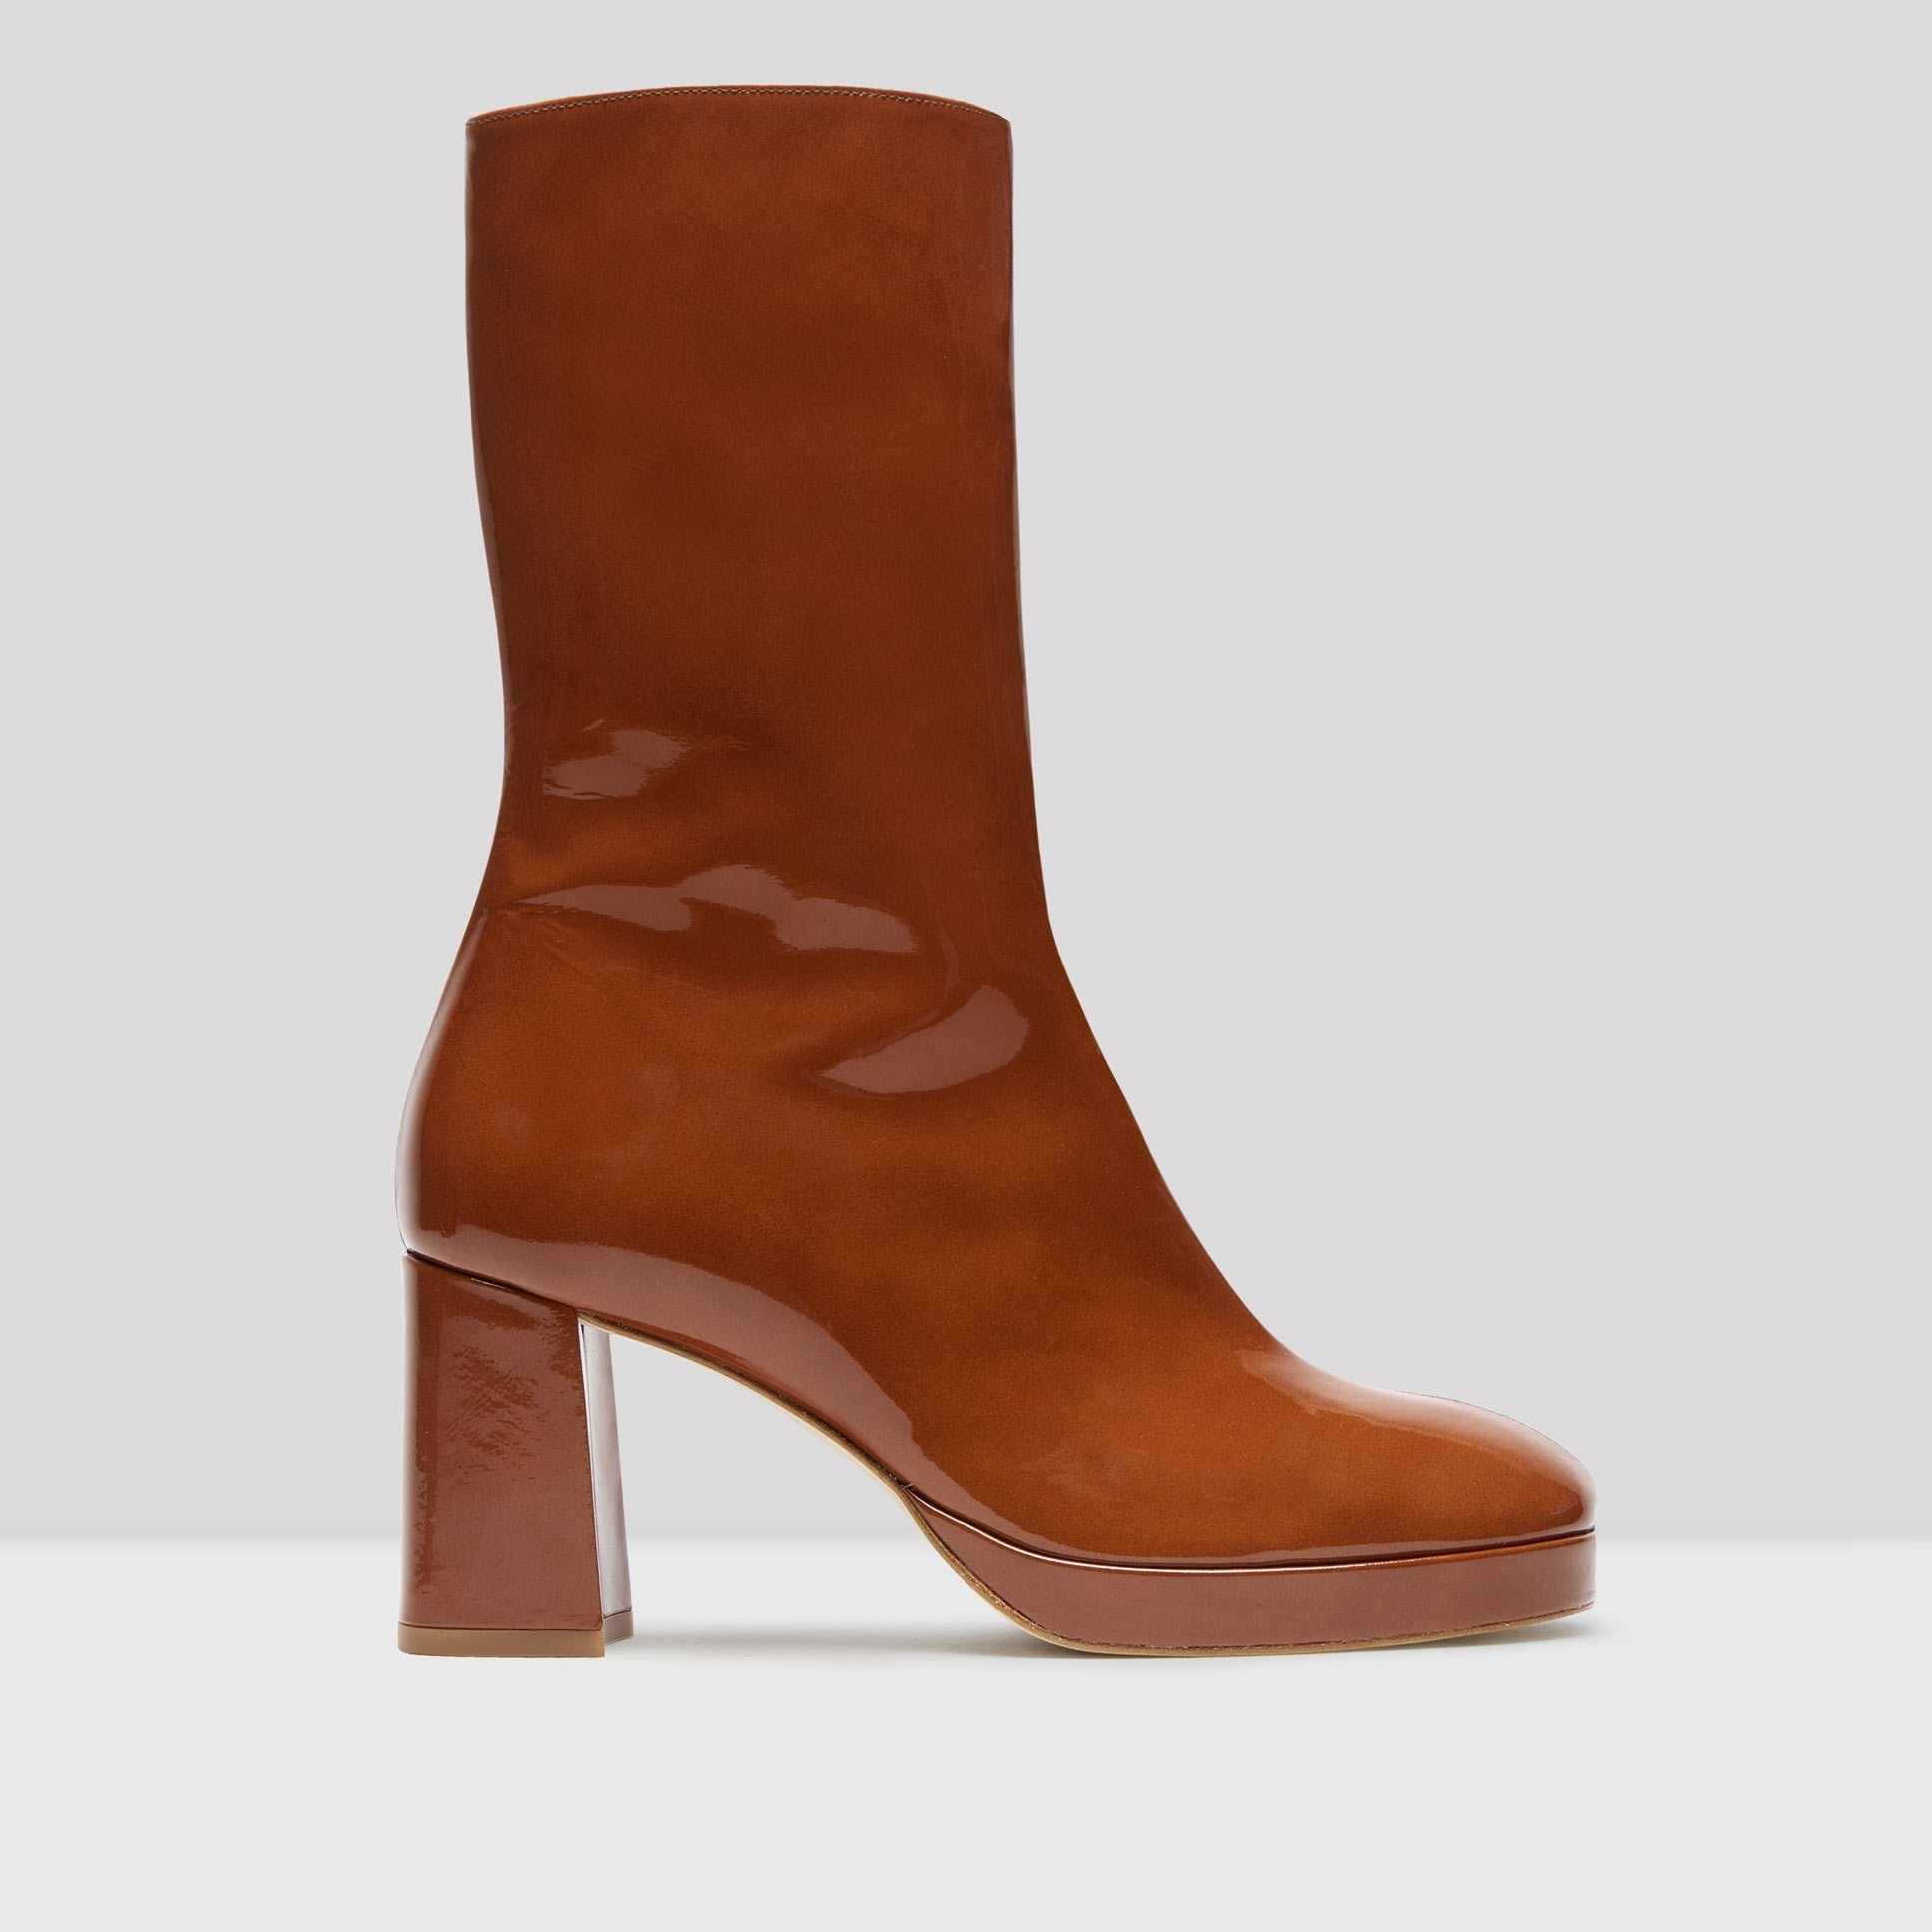 a1f09fb96d2 2019's Newest Boot Trends Will Have You Ready To Ditch Your Sandals ...